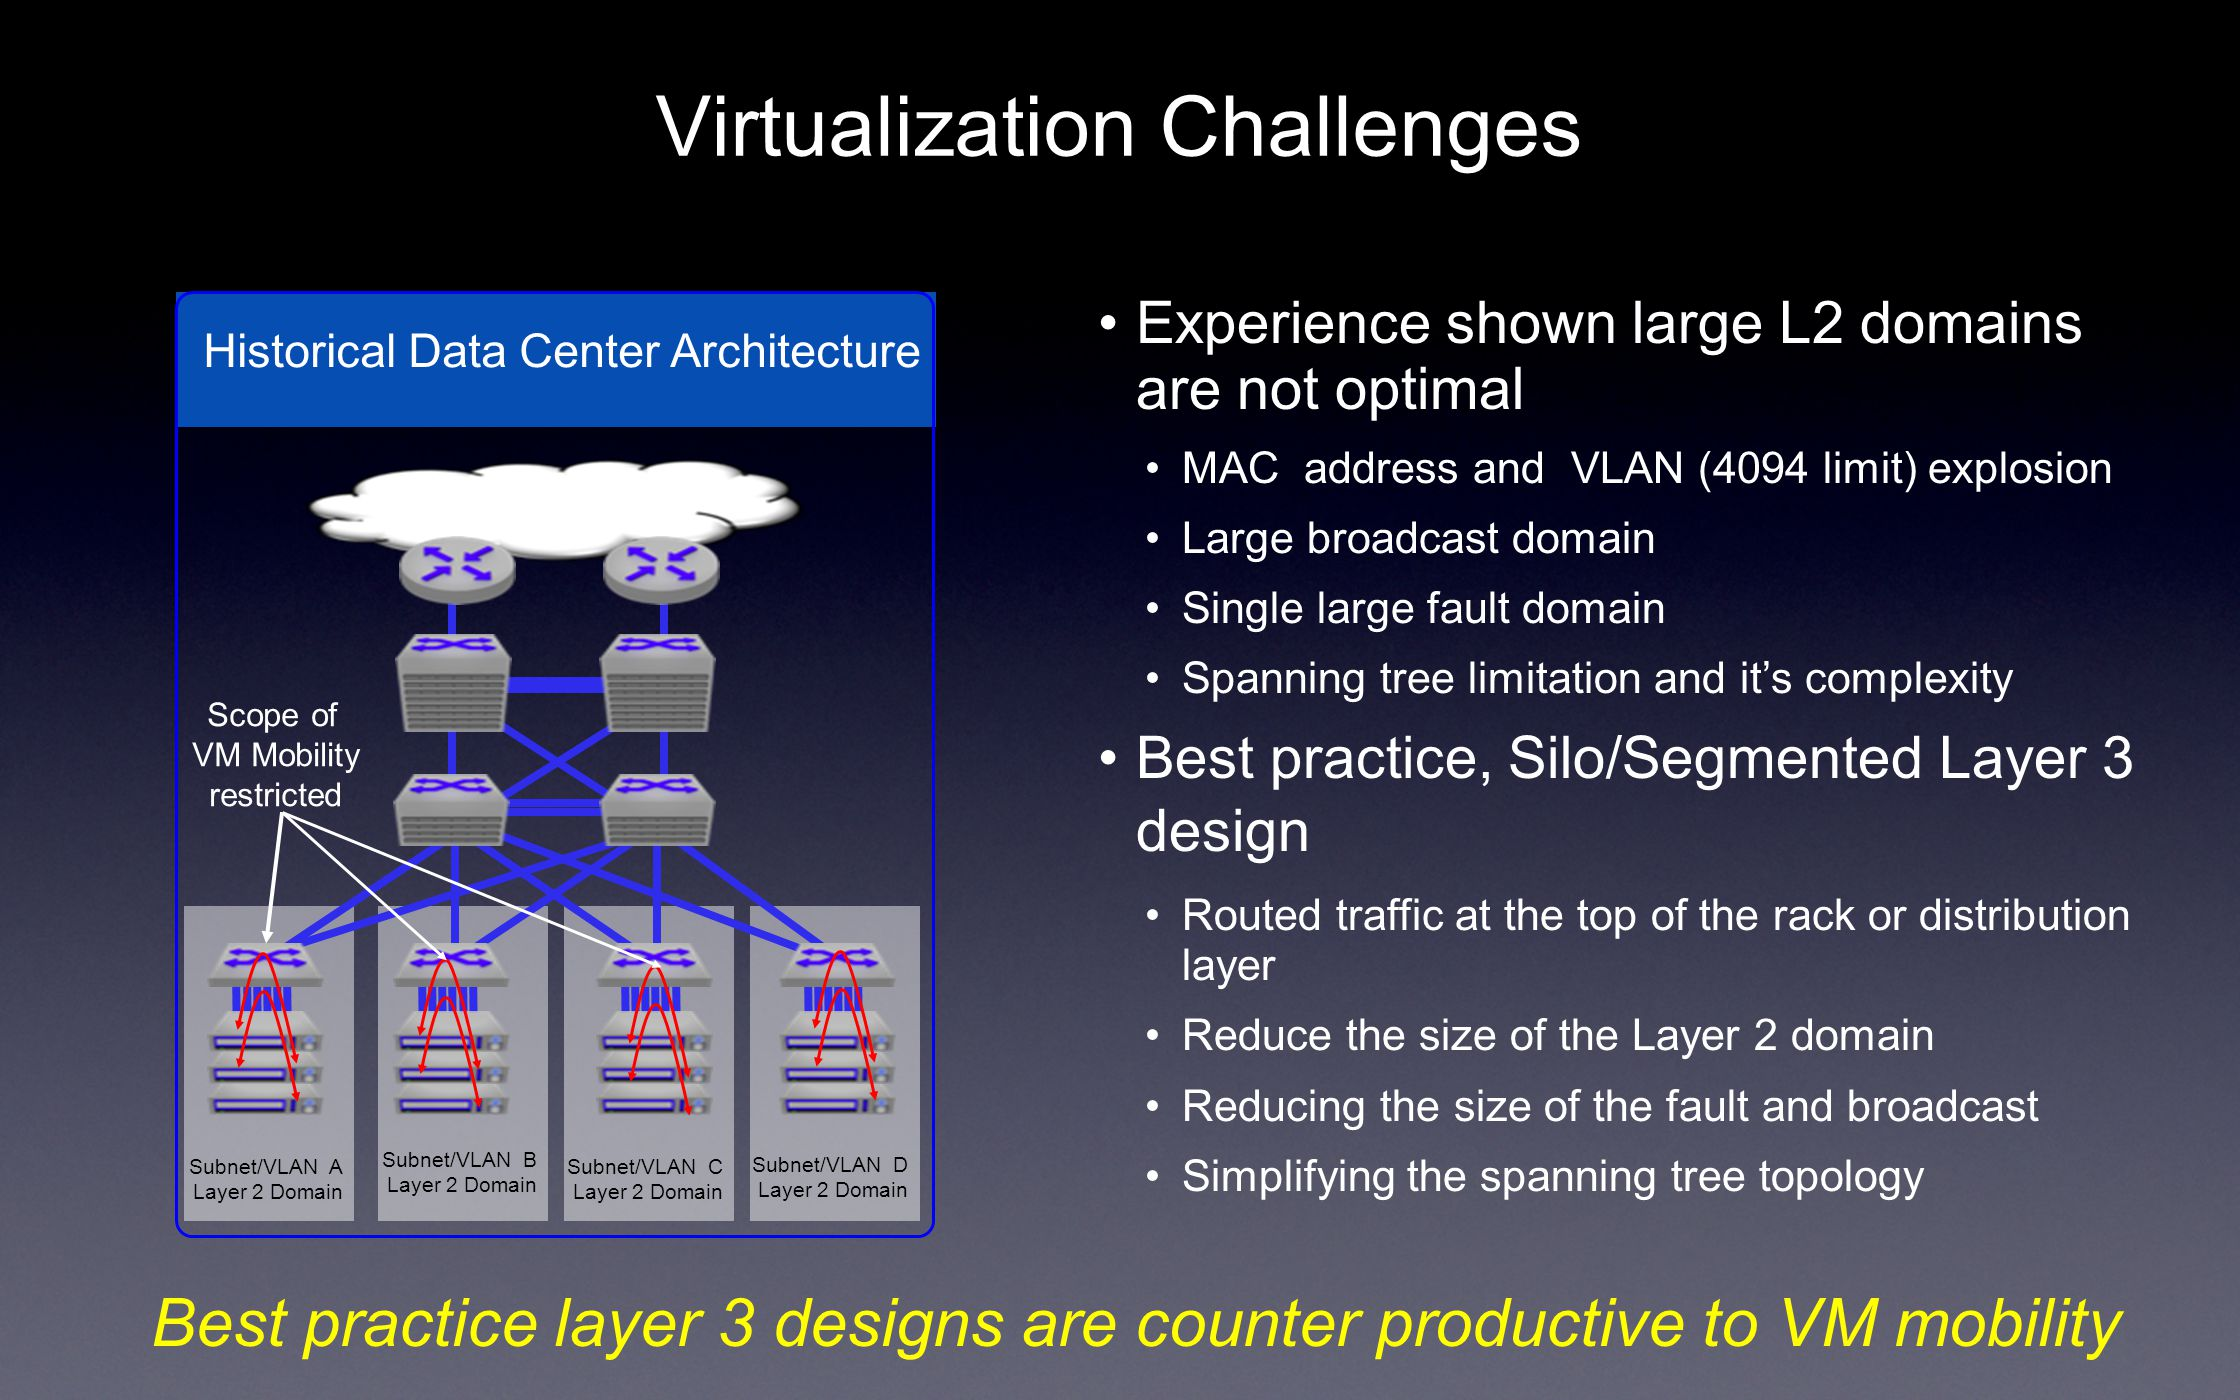 Virtualization Challenges Experience shown large L2 domains are not optimal MAC address and VLAN (4094 limit) explosion Large broadcast domain Single large fault domain Spanning tree limitation and it's complexity Best practice, Silo/Segmented Layer 3 design Routed traffic at the top of the rack or distribution layer Reduce the size of the Layer 2 domain Reducing the size of the fault and broadcast Simplifying the spanning tree topology Best practice layer 3 designs are counter productive to VM mobility Historical Data Center Architecture Subnet/VLAN A Layer 2 Domain Subnet/VLAN B Layer 2 Domain Subnet/VLAN C Layer 2 Domain Subnet/VLAN D Layer 2 Domain Scope of VM Mobility restricted